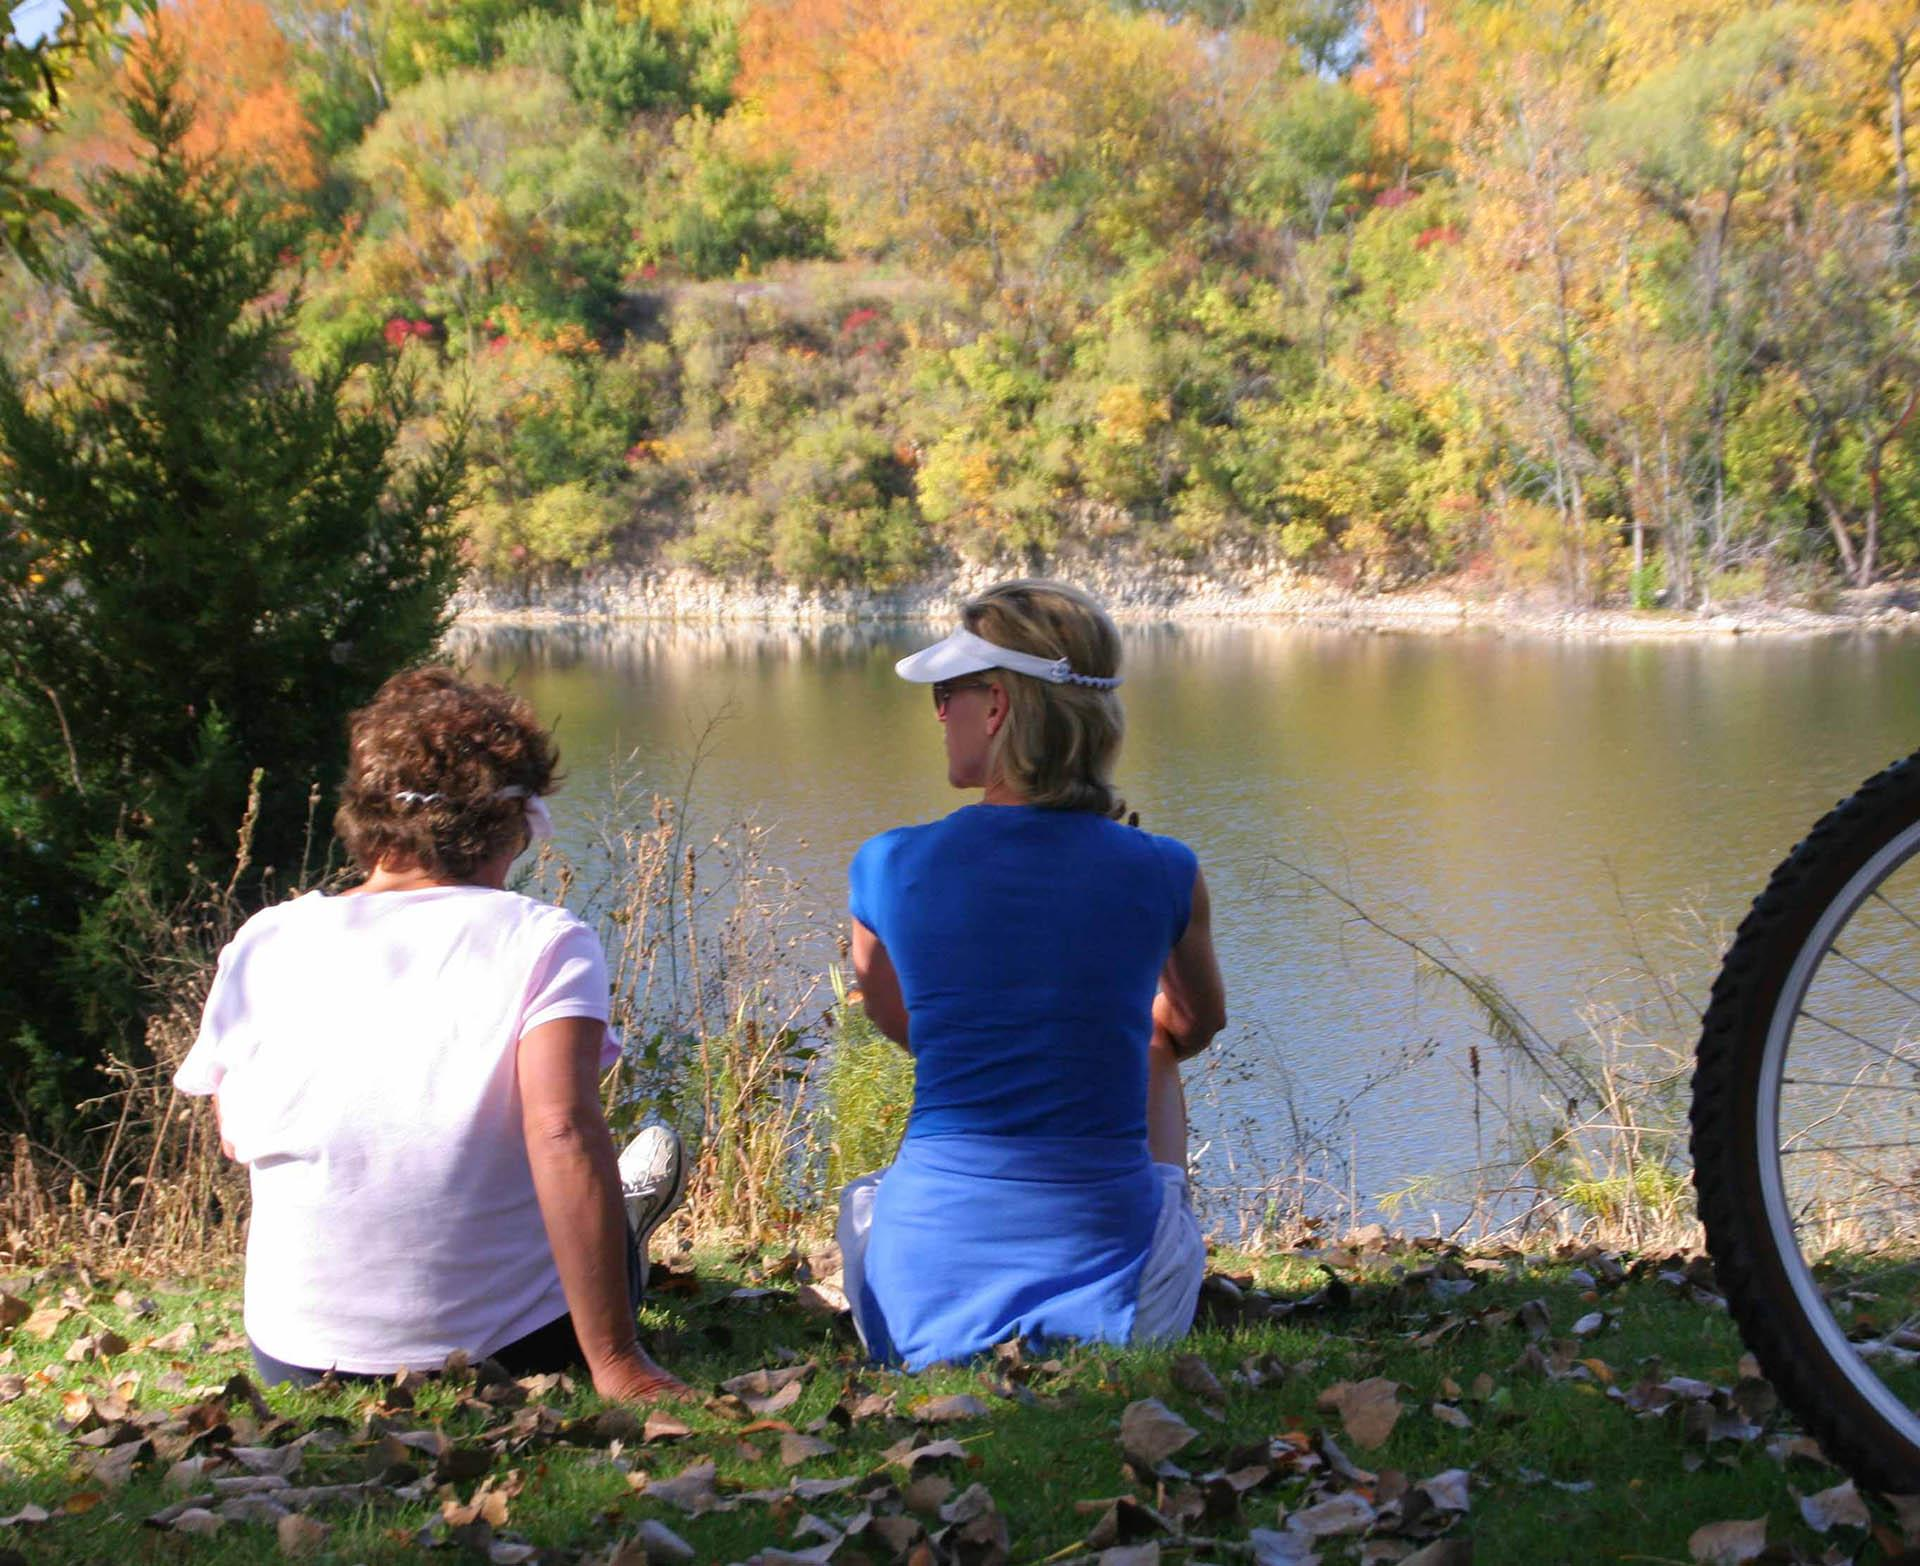 Bicyclists enjoy a relaxing break overlooking the quarry lake at Headquarters Forest Preserve which is the trailhead for the Rock River Recreation Path. (Photo by Jamie B. Johannsen)